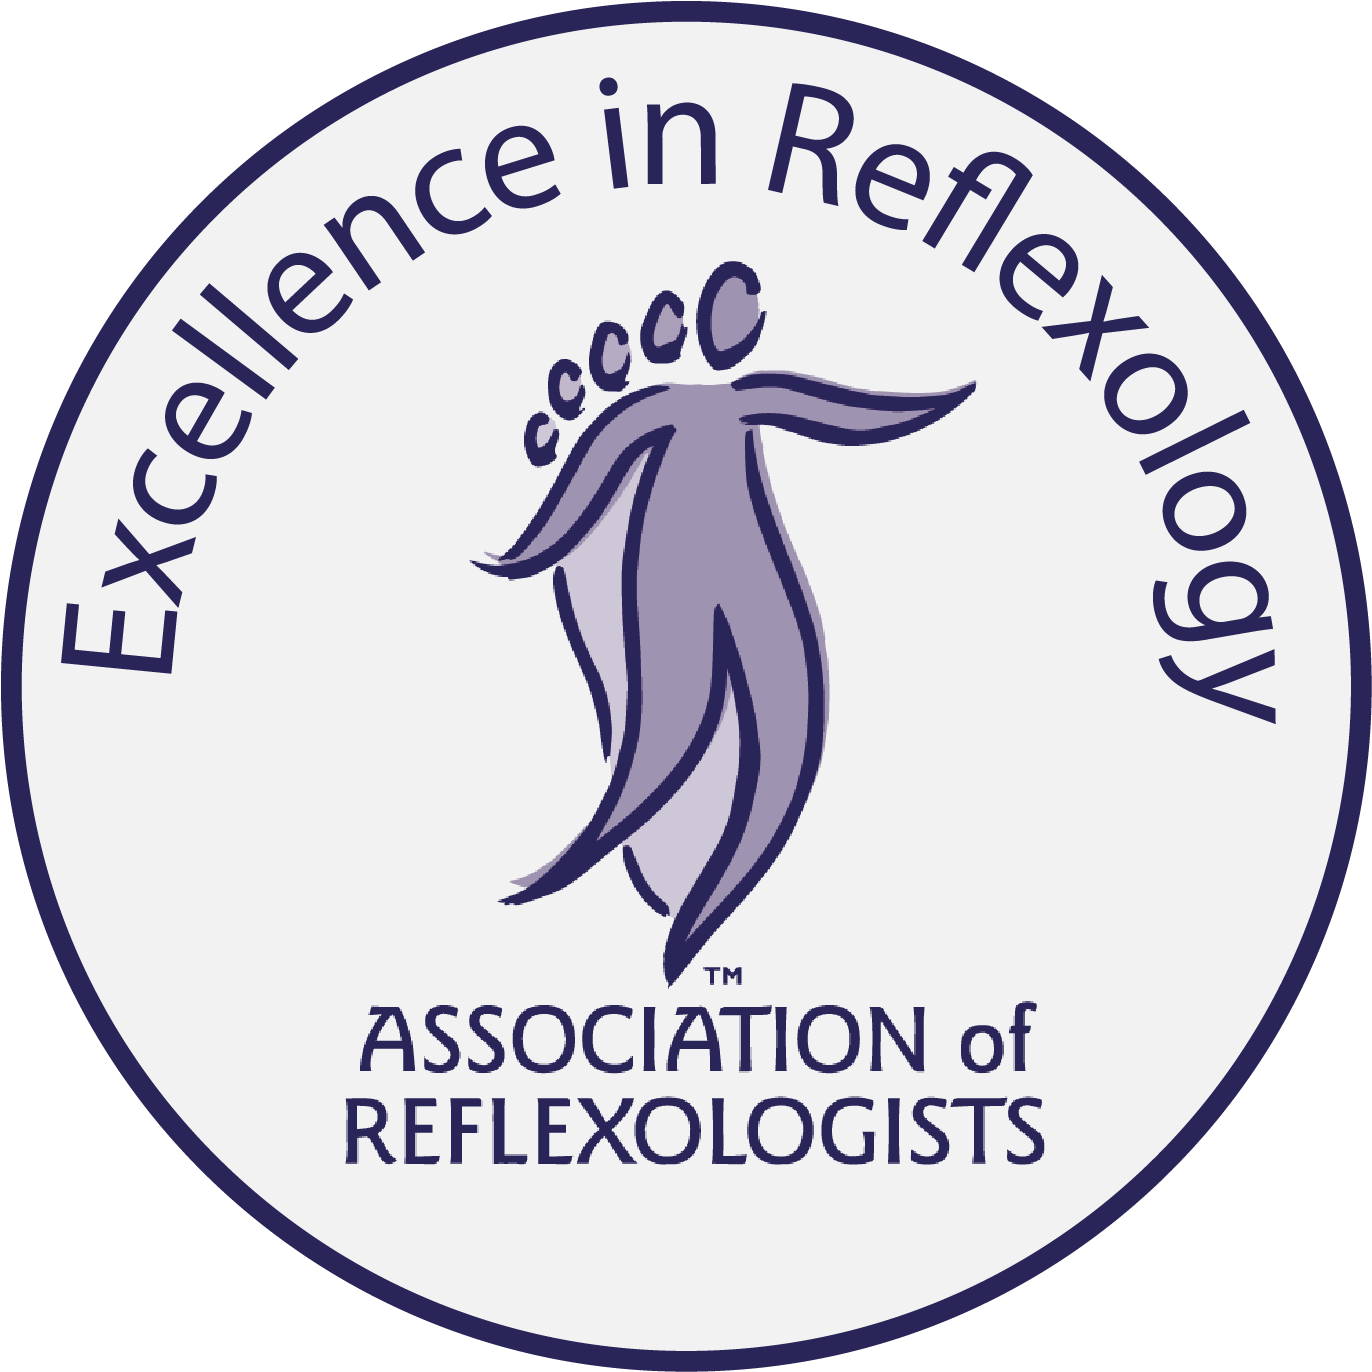 Association of Reflexologists AoR